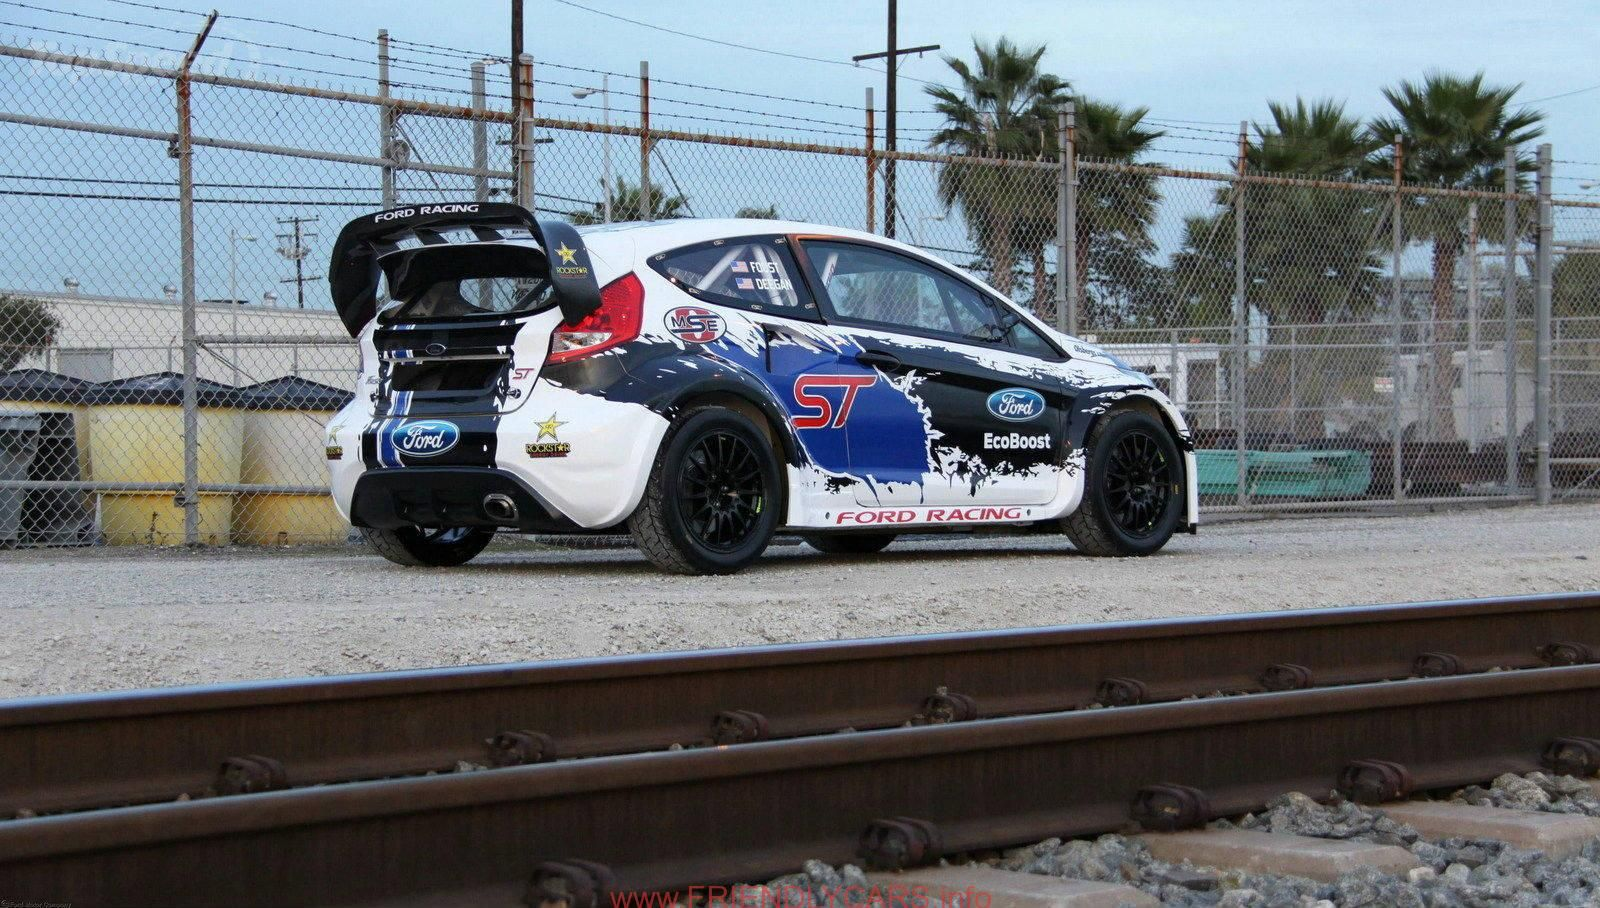 Nice Ford Fiesta St Rally Car Images Hd Ford Fiesta St Gtc The Detroit Rally Starter Super Carros Carros